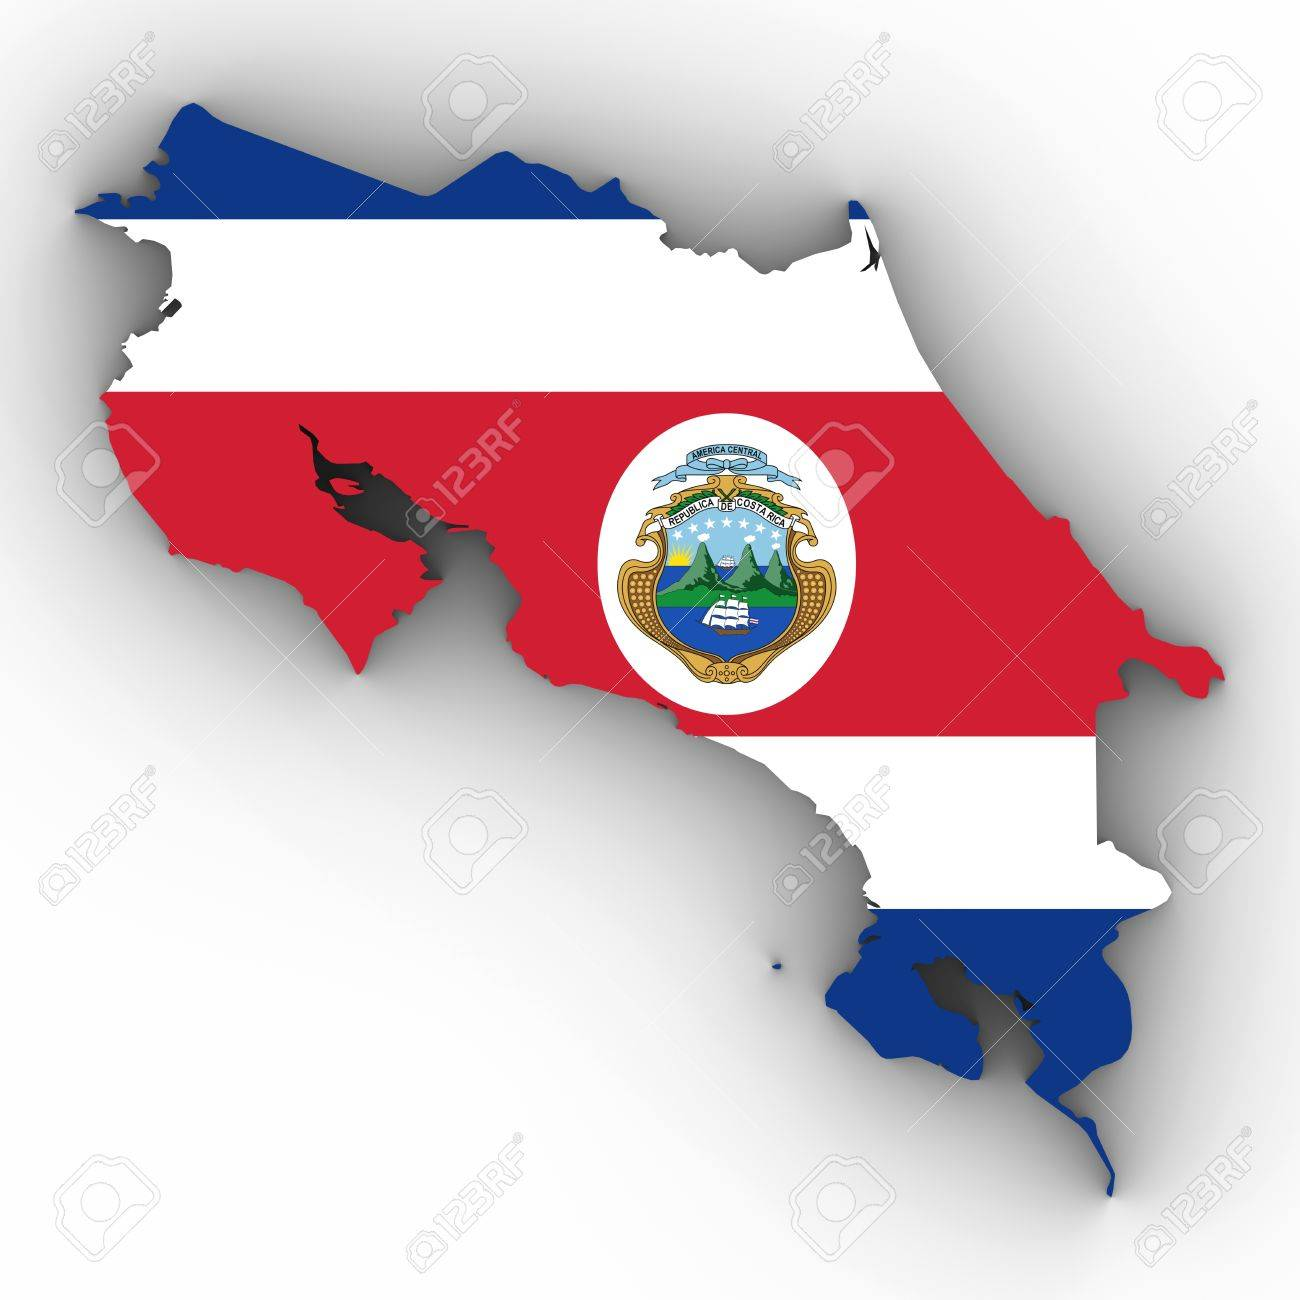 costa rica map outline with costa rican flag on white with shadows